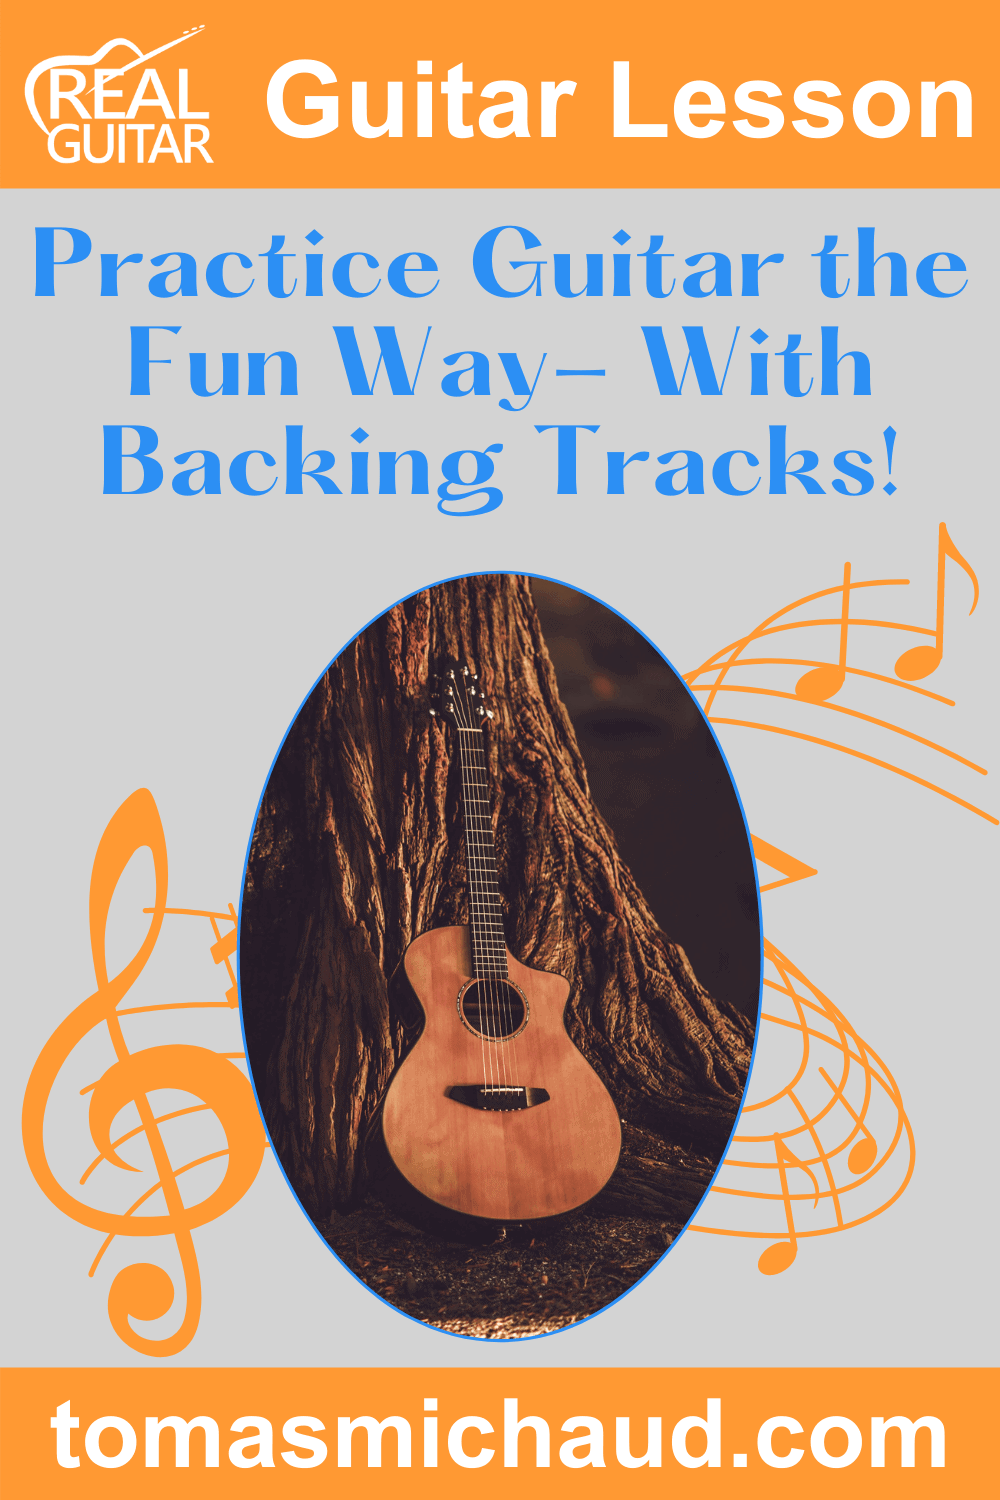 Practice Guitar the Fun Way - With Backing Tracks!